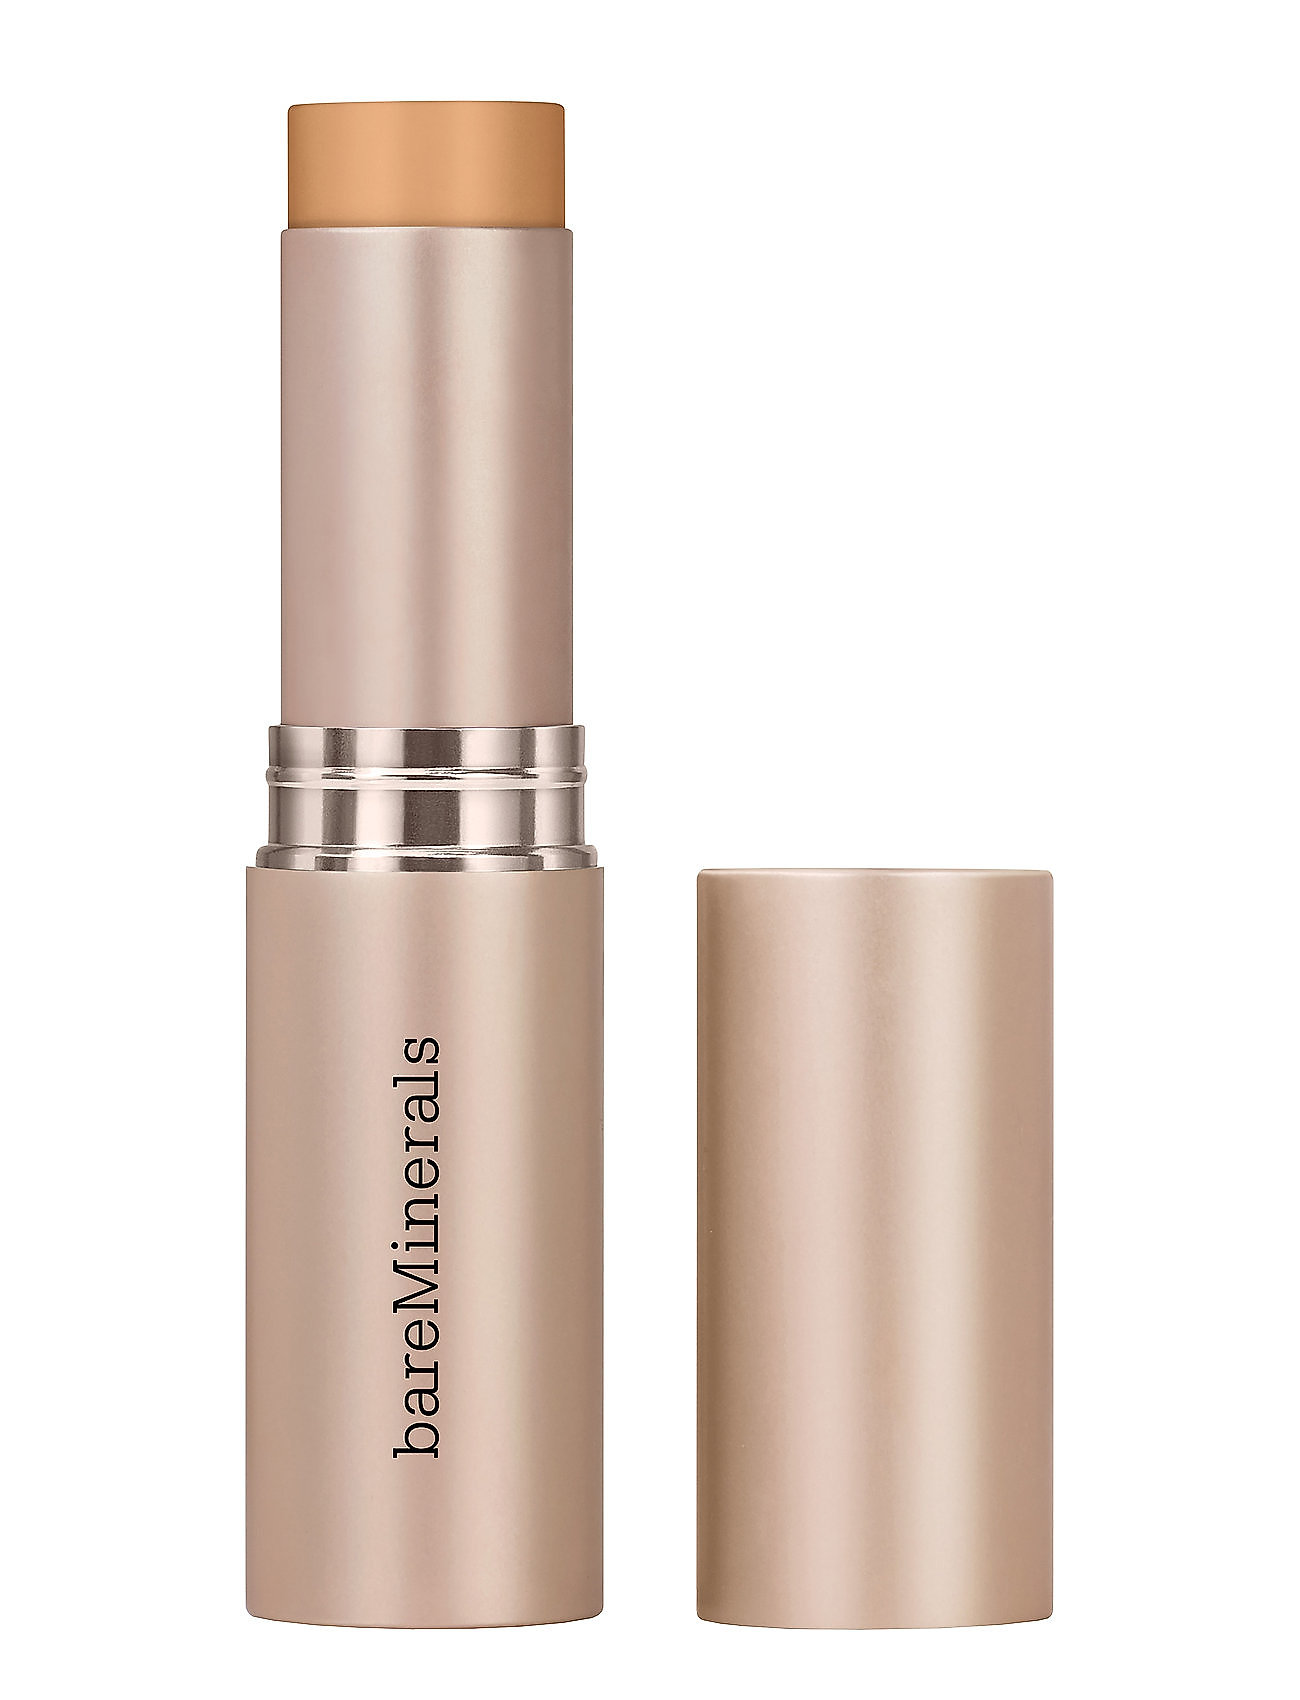 Image of Complexion Rescue Hydrating Foundation Stick Spf 25 Foundation Makeup BareMinerals (3250586907)